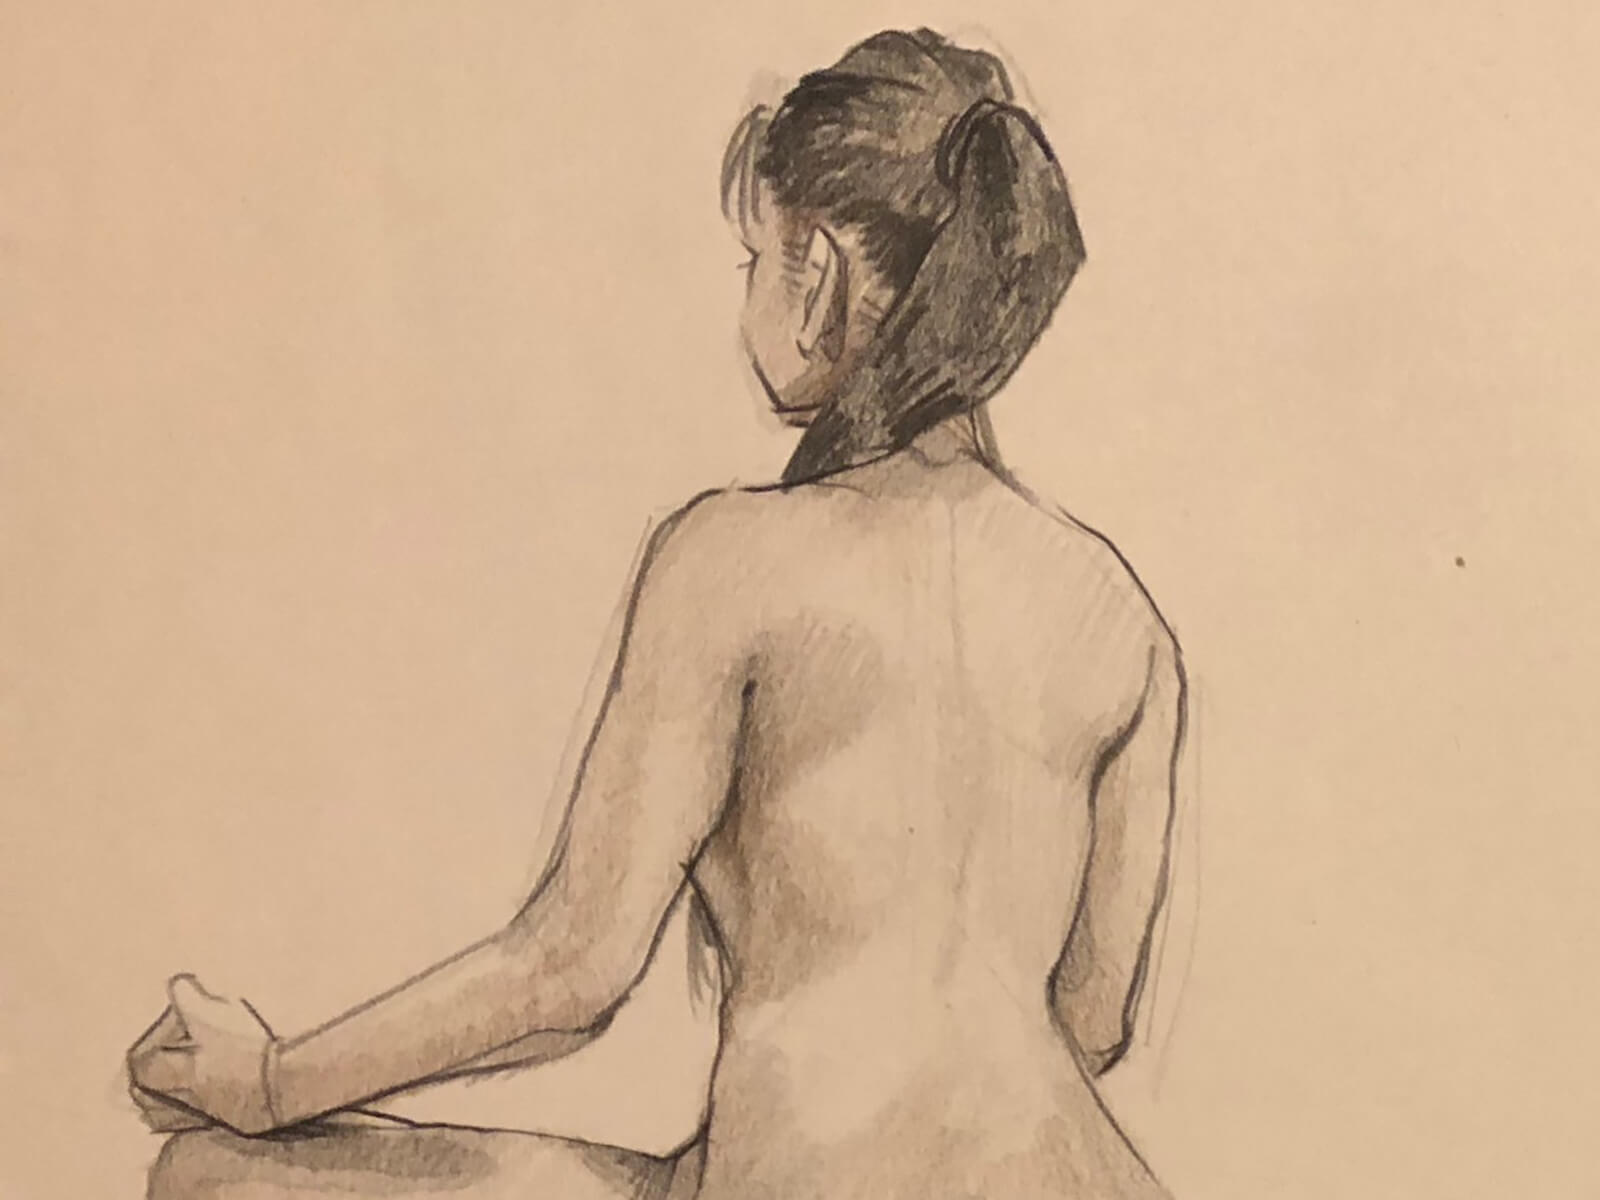 A sketch of a nude woman, sitting with her back to the artist